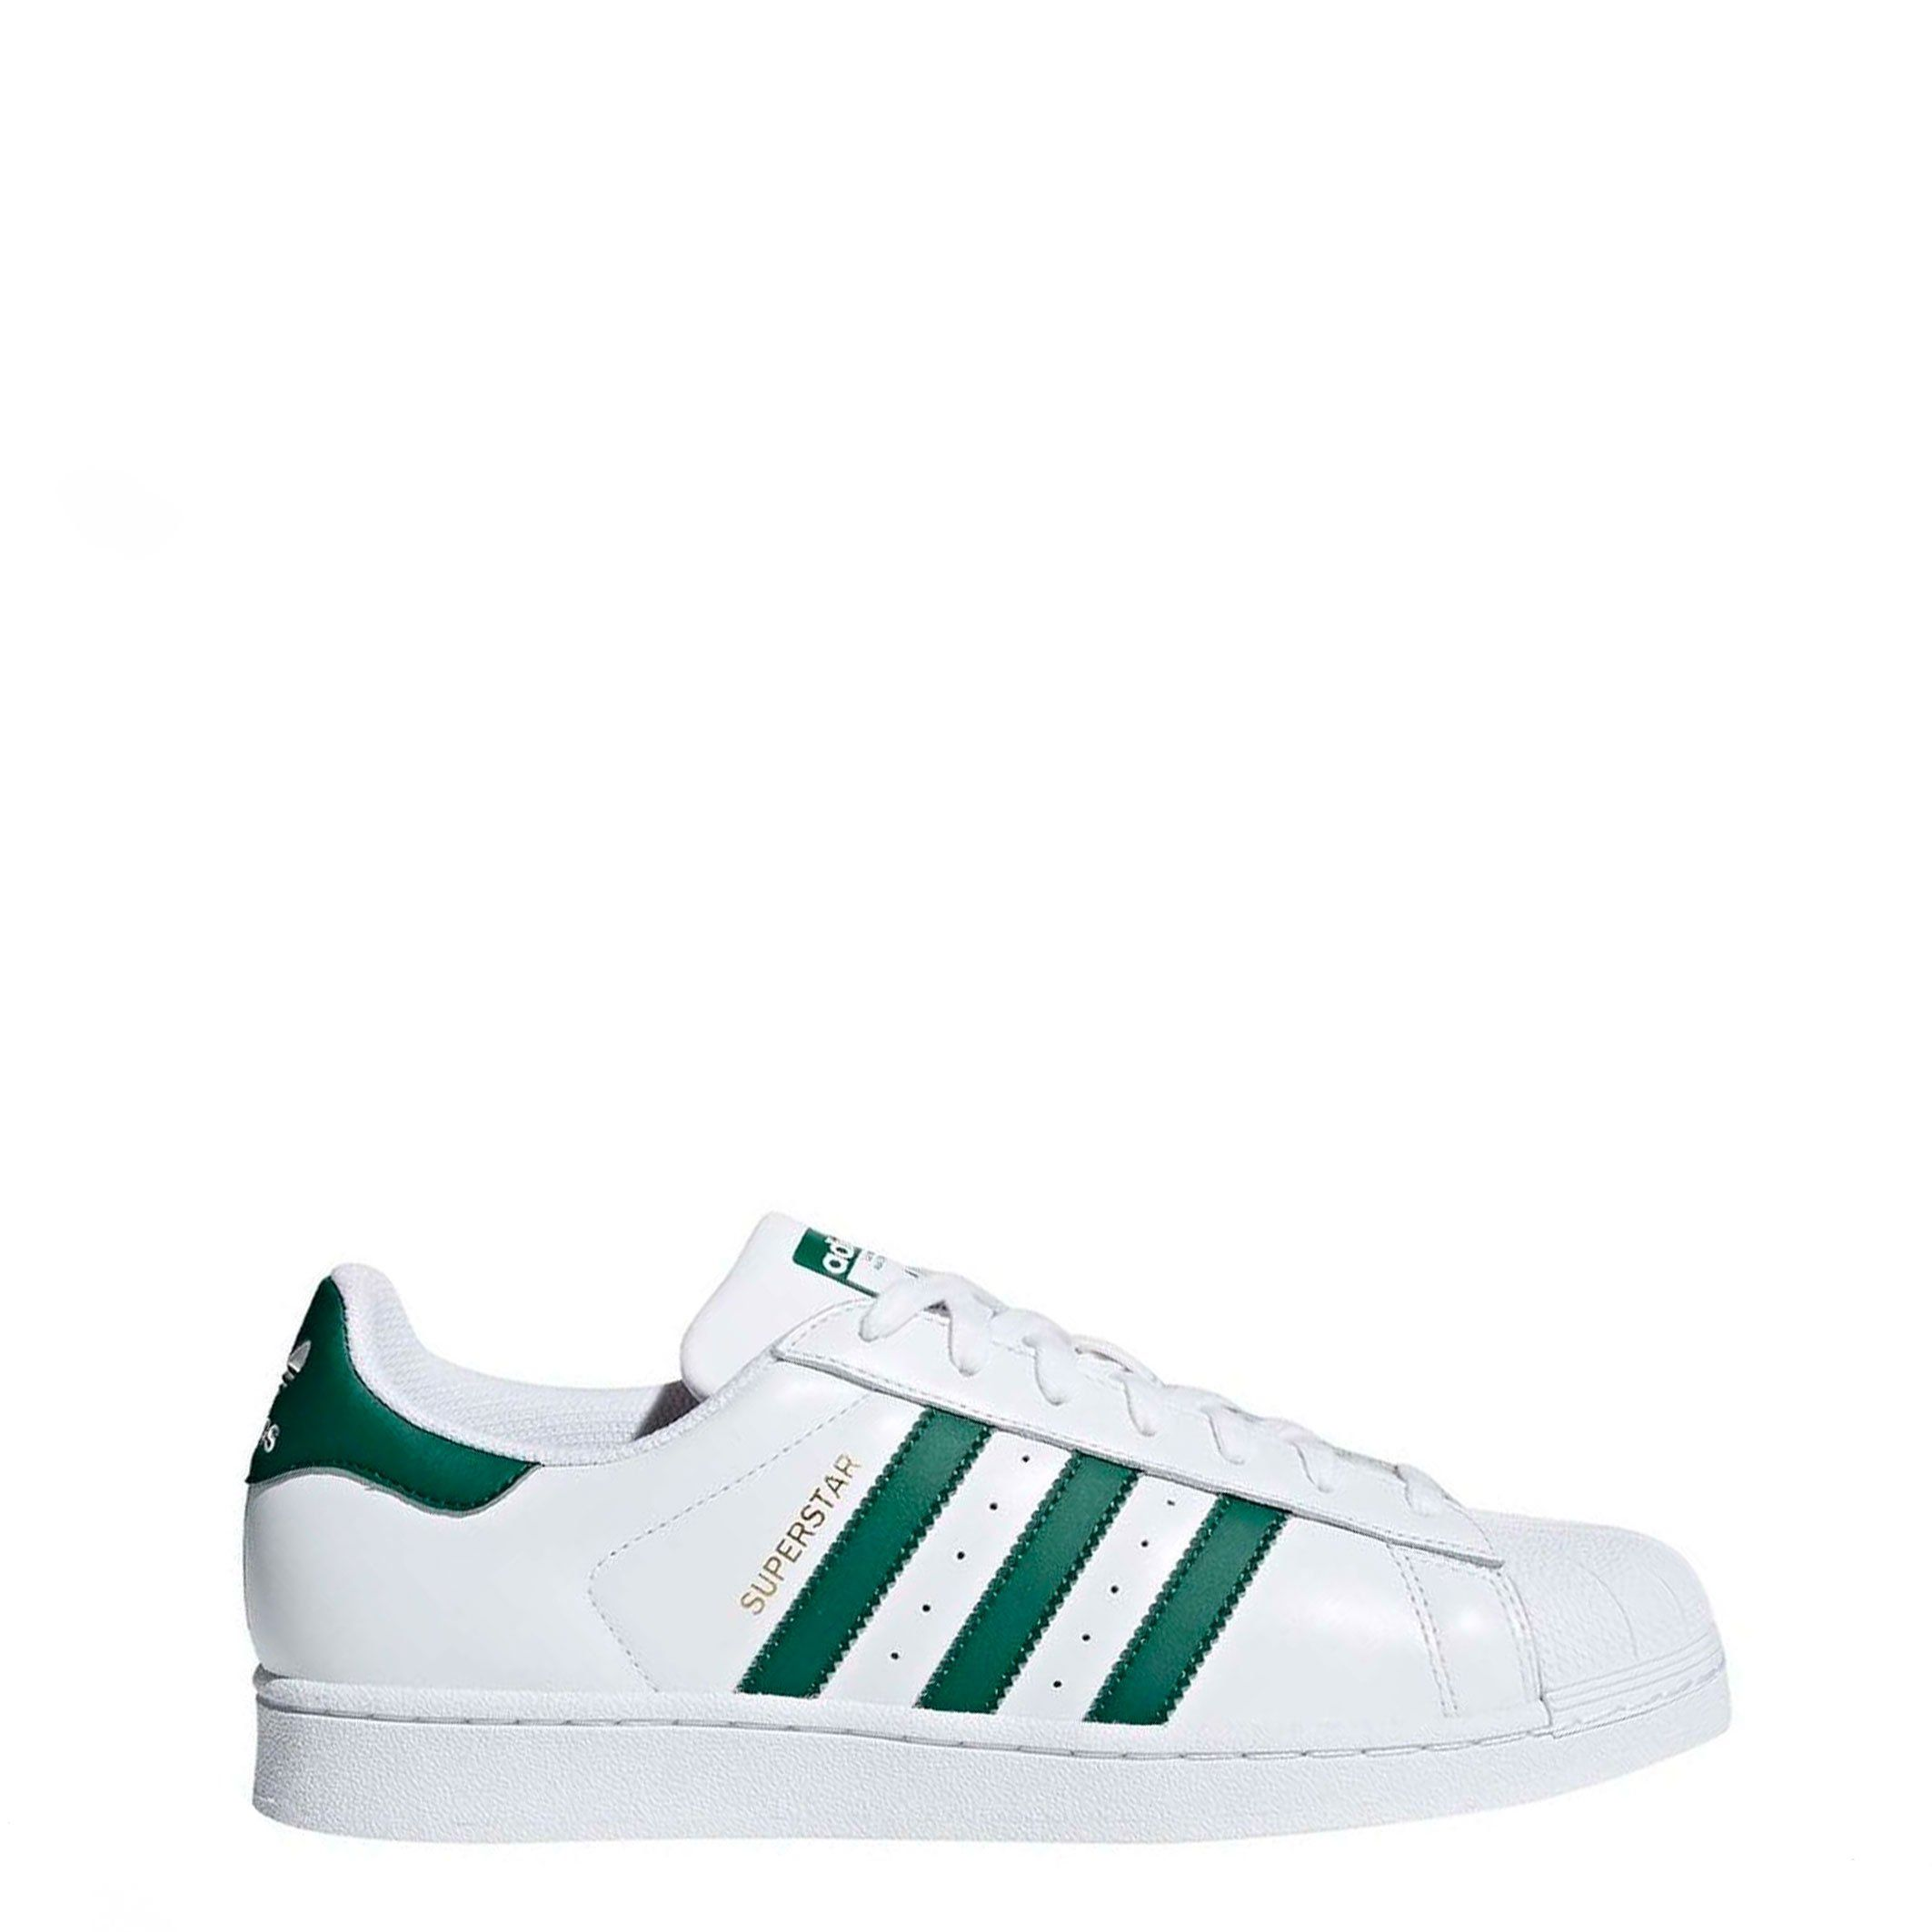 Buy Adidas NEO Men and Women SUPERSTAR FOUNDATION Classic